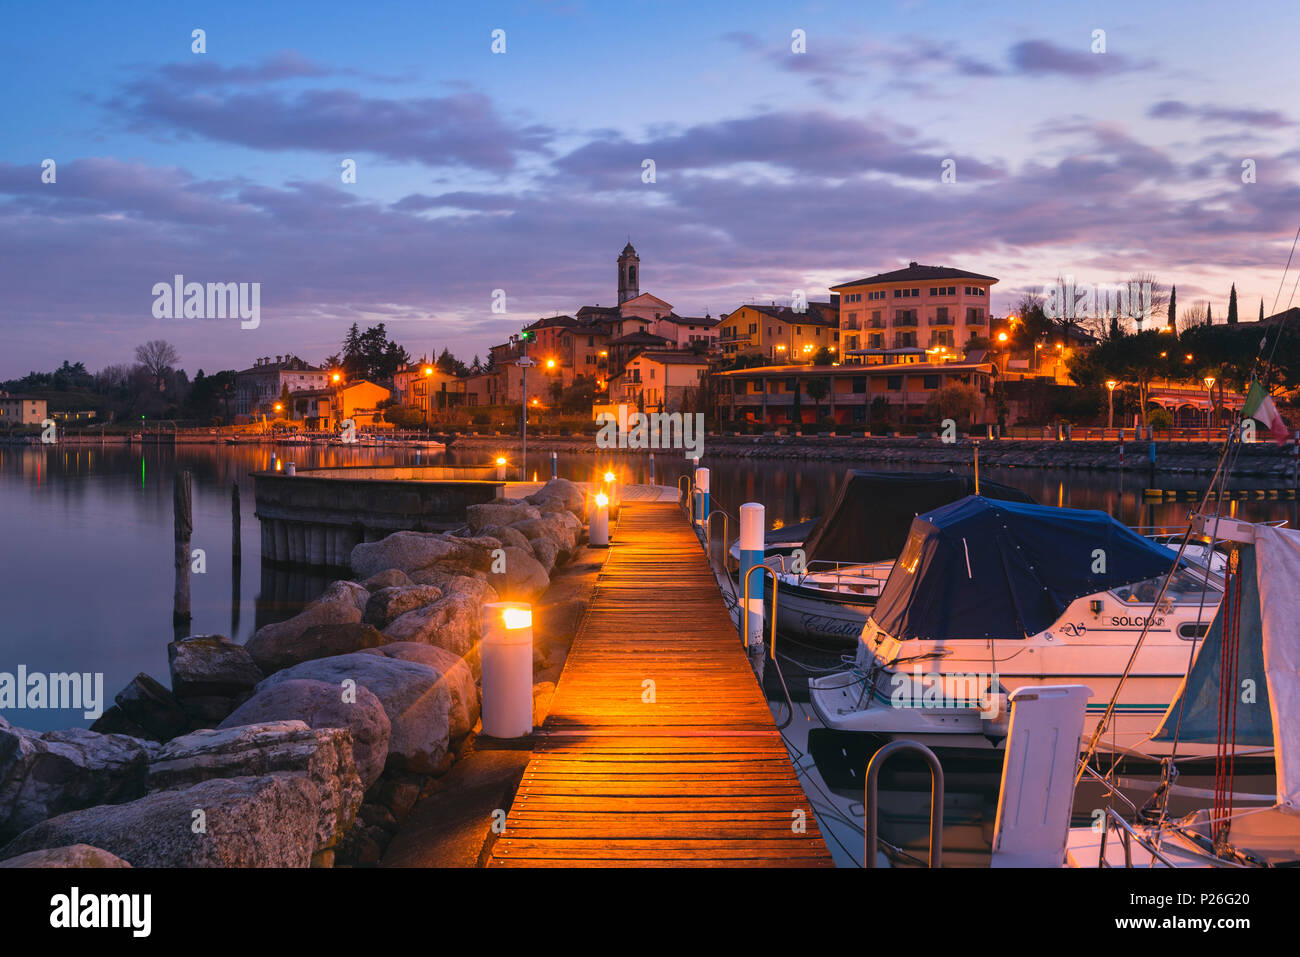 Clusane d'Iseo, Iseo lake, Brescia province, Lombardy district, Italy, Europe. - Stock Image